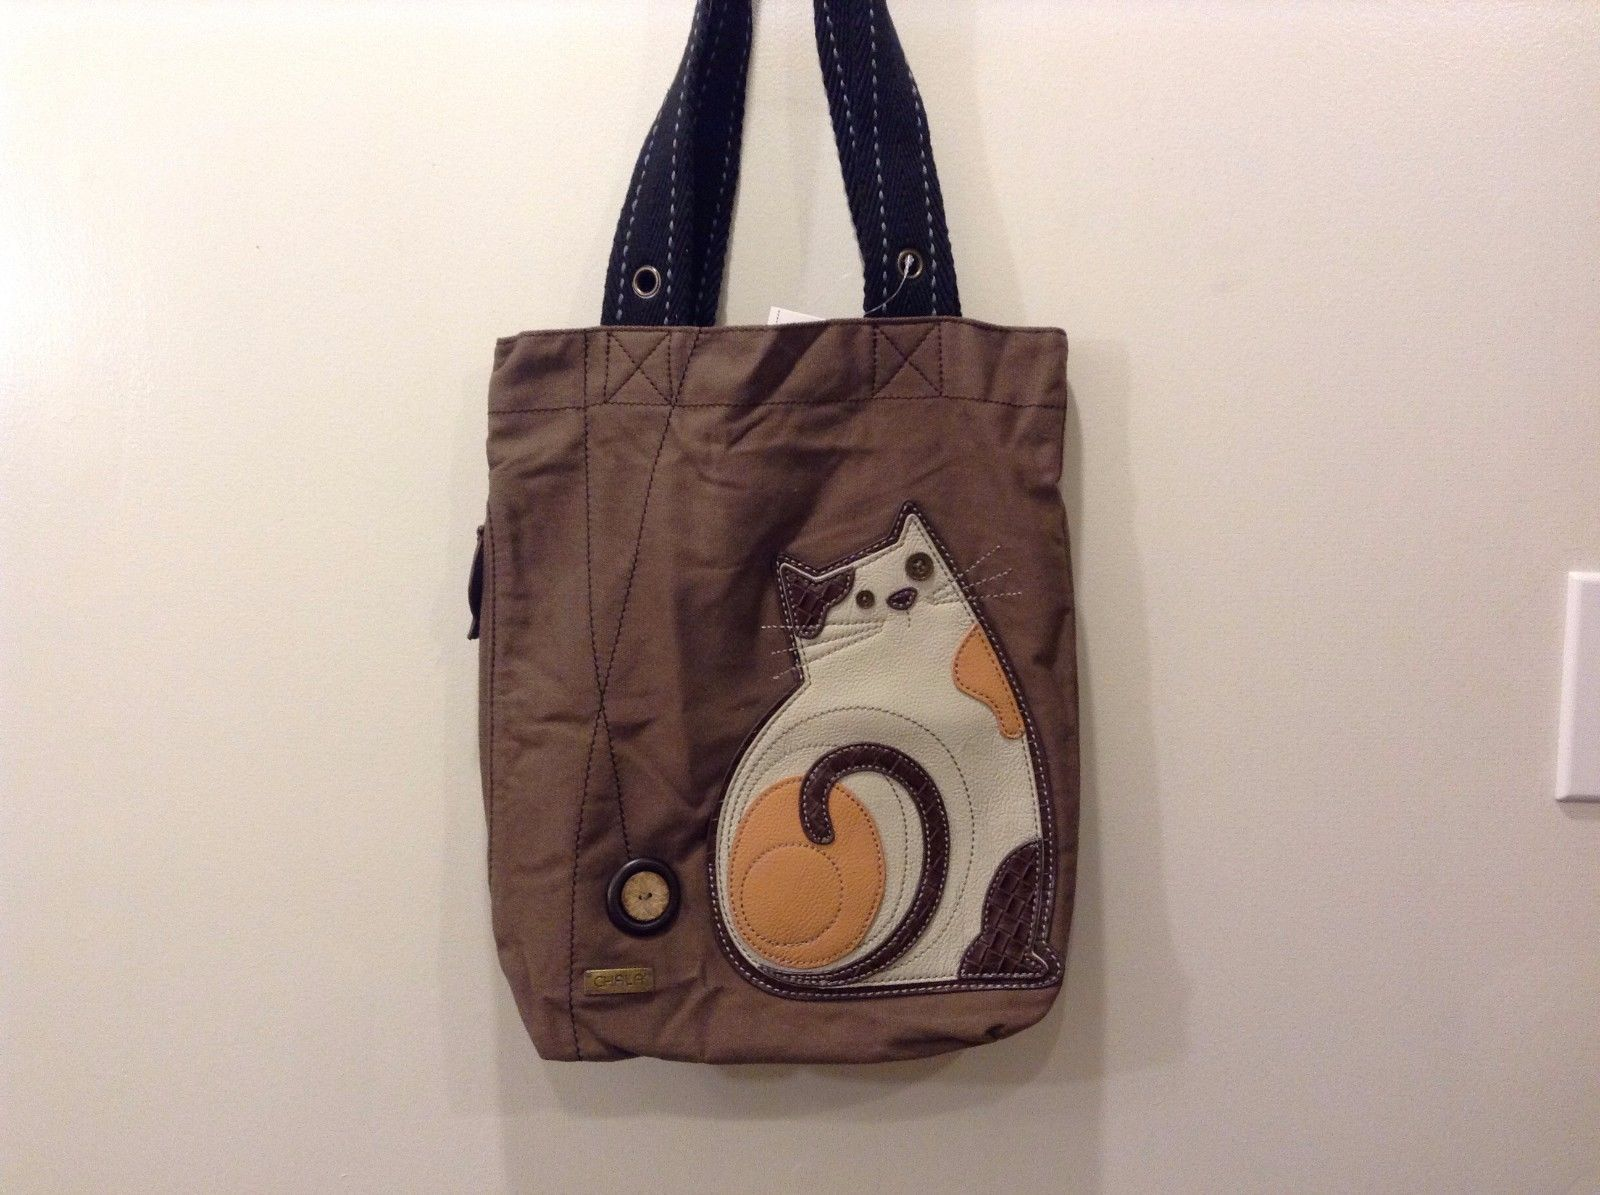 New Chala Handbags Simple Tote Brown Canvas Lazzy Cat Magnetic Closure NWT